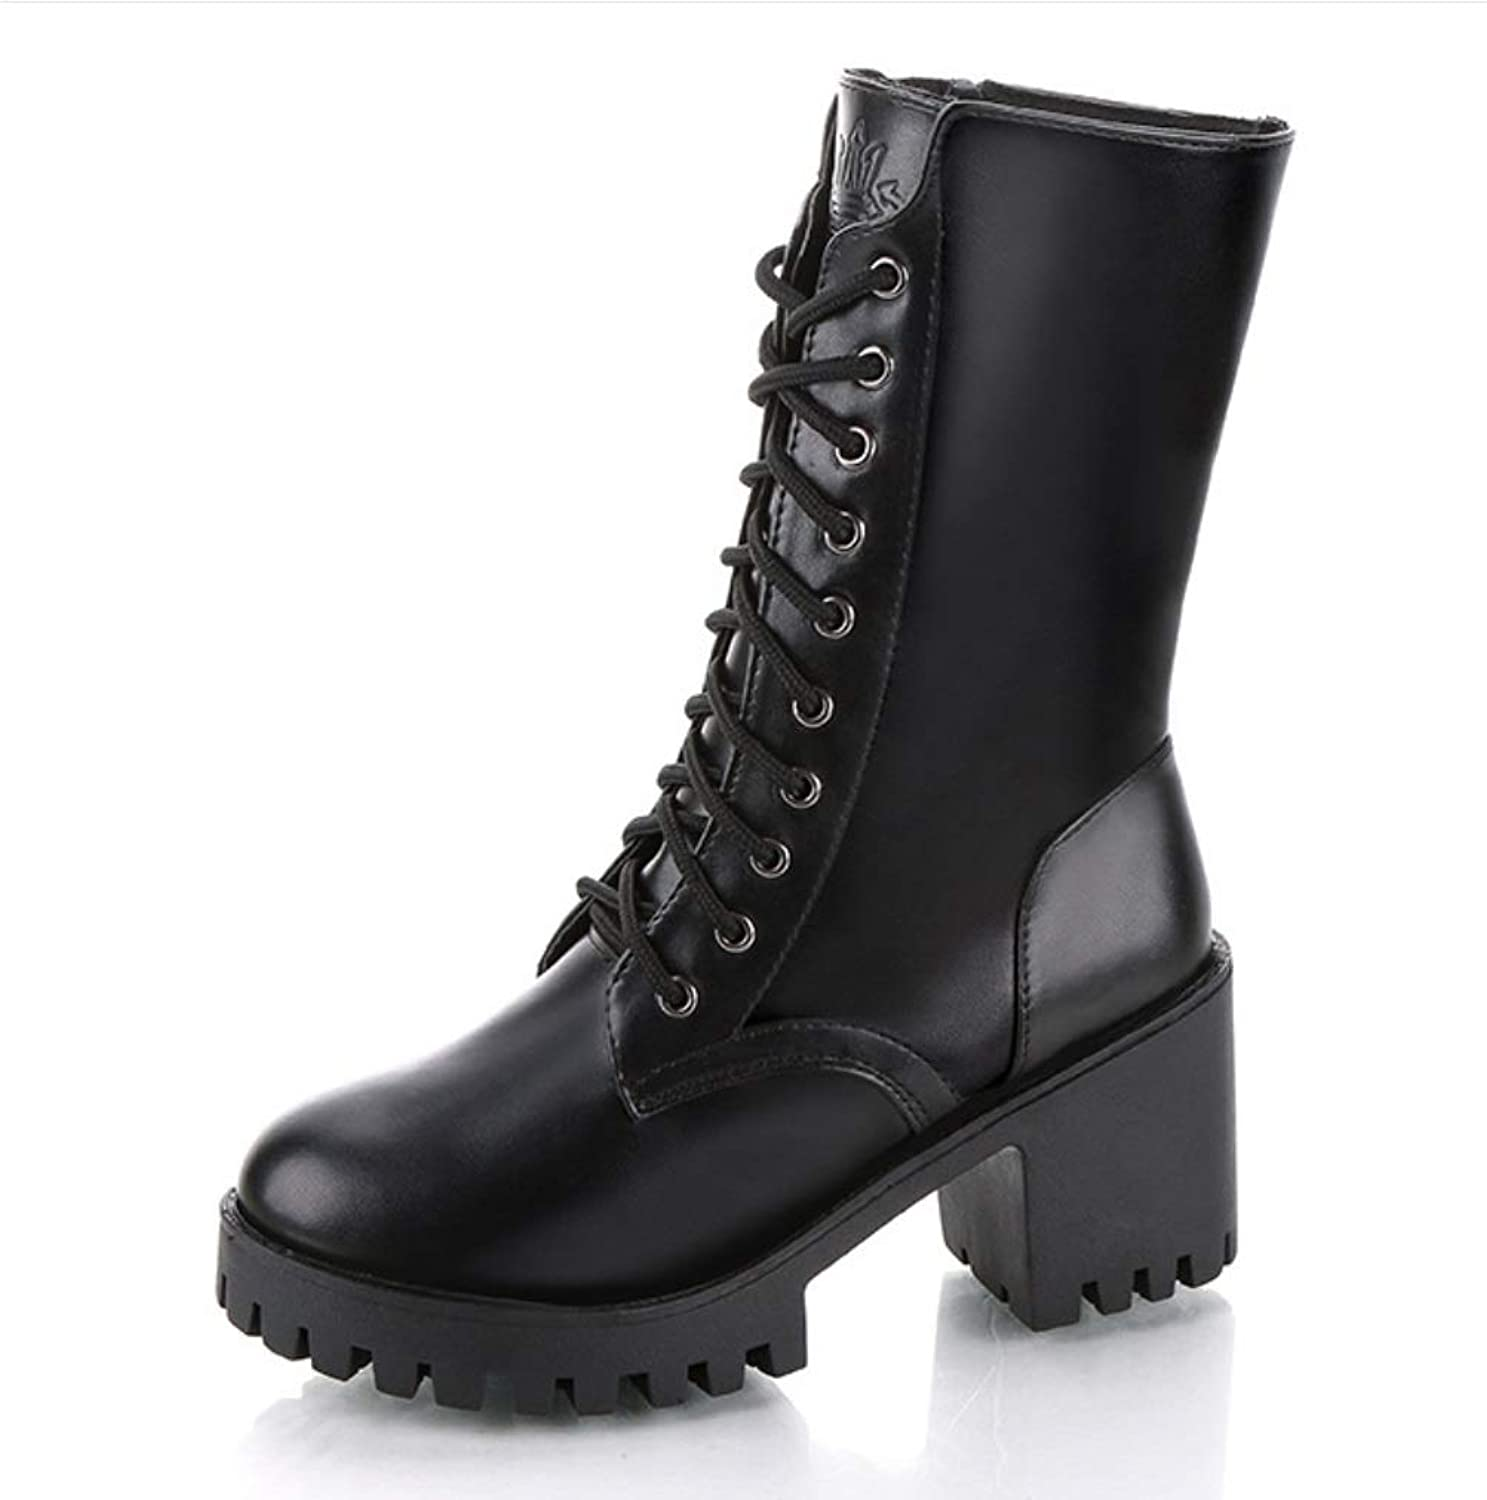 Women Calf Biker Boots Casual Boots Grip Sole Lady Autumn Winter Army Transer Combat Boots Buckle Low Heel shoes Thick Block Chunky Heels Boots